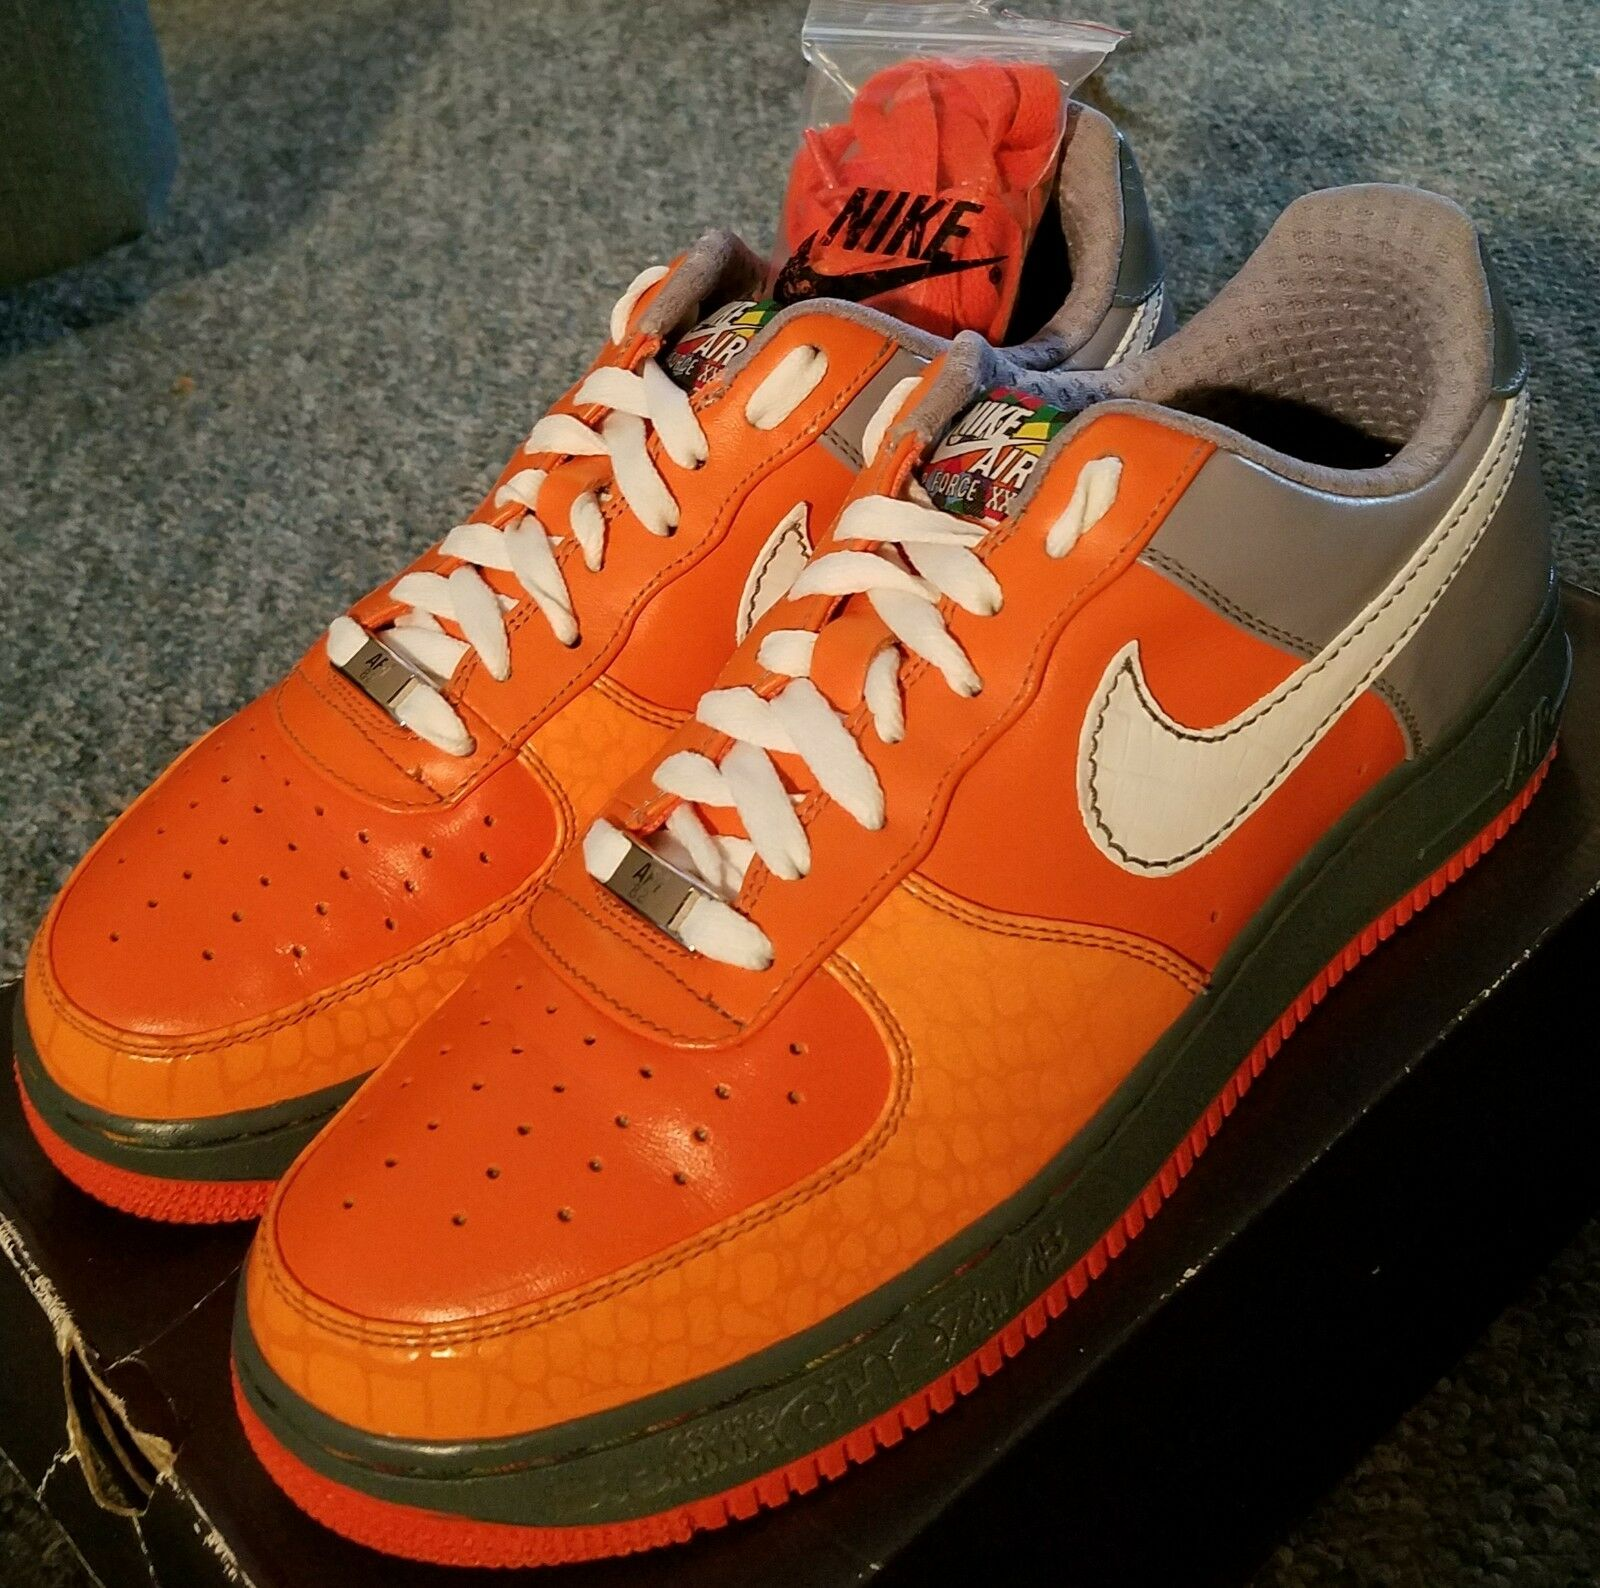 2009 Nike Air Force 1 men's 10, Premium 'Choz South Bronx' Extremely Clean! VNDS